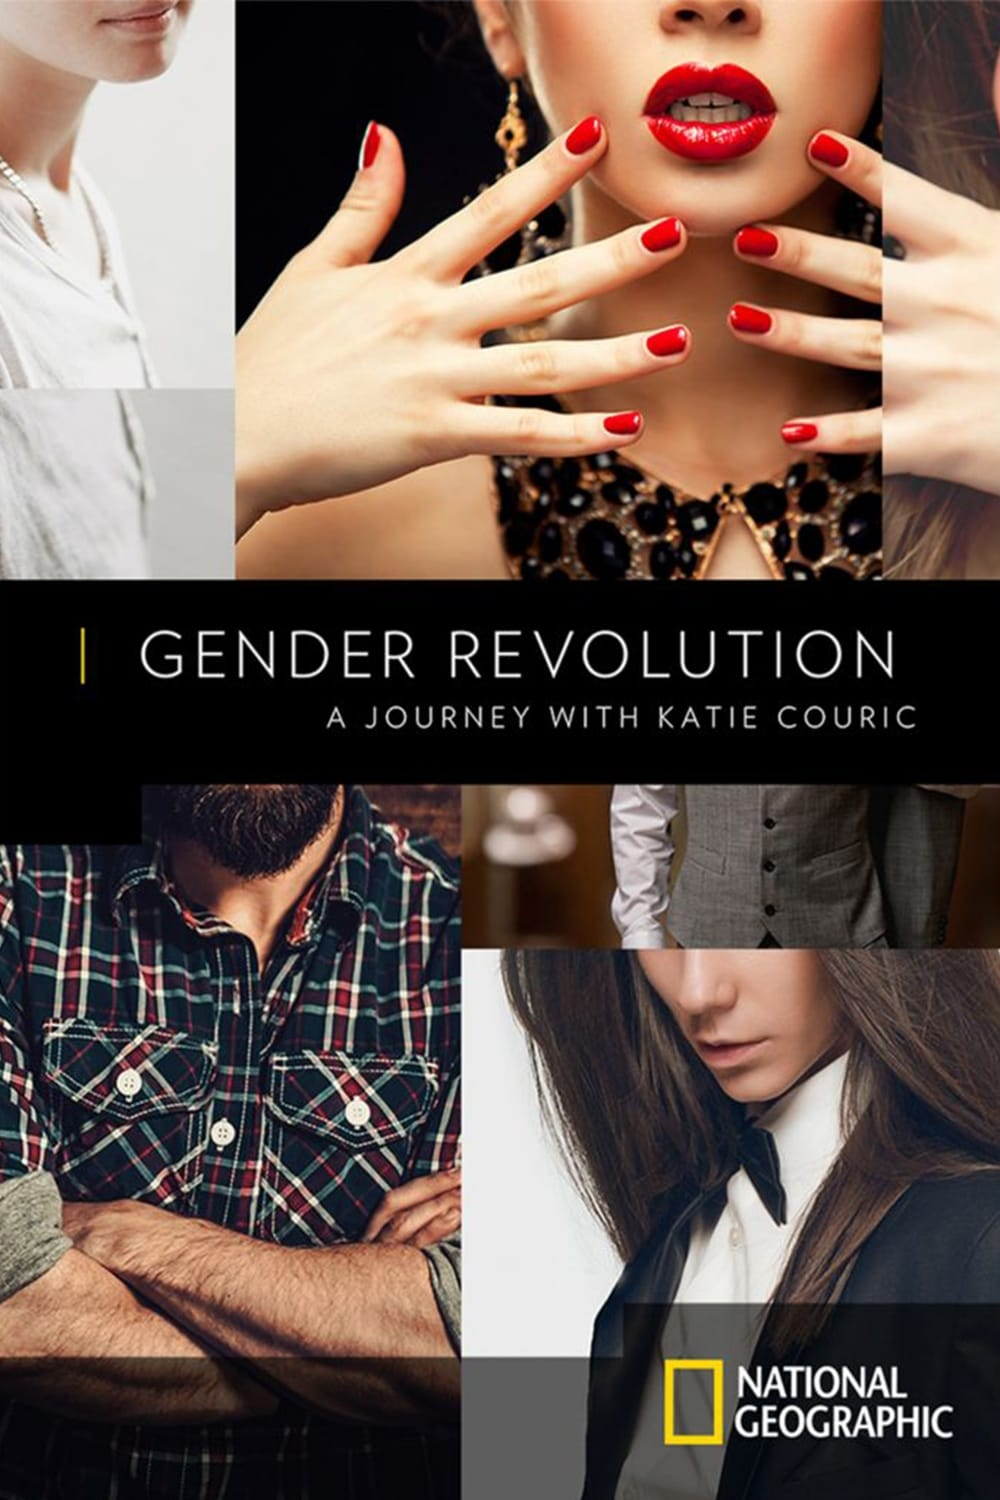 watch Gender Revolution: A Journey with Katie Couric 2017 online free